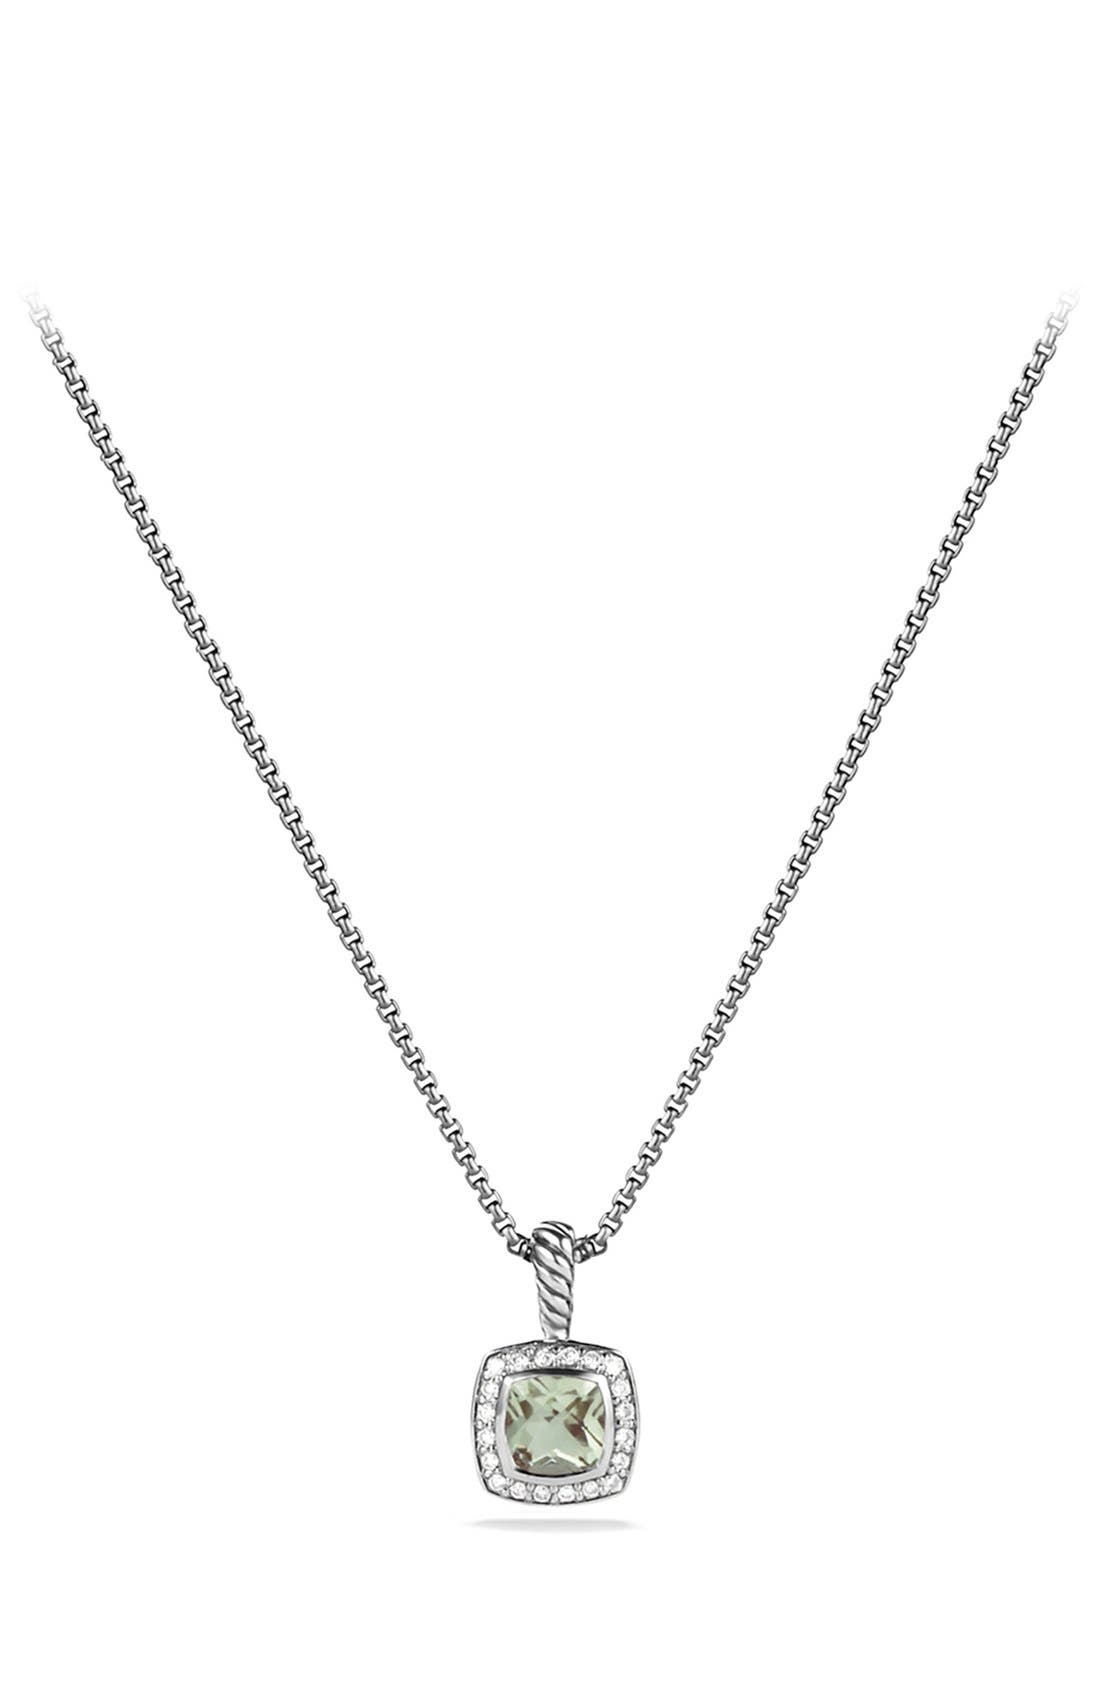 DAVID YURMAN Albion Petite Pendant with Prasiolite and Diamonds on Chain